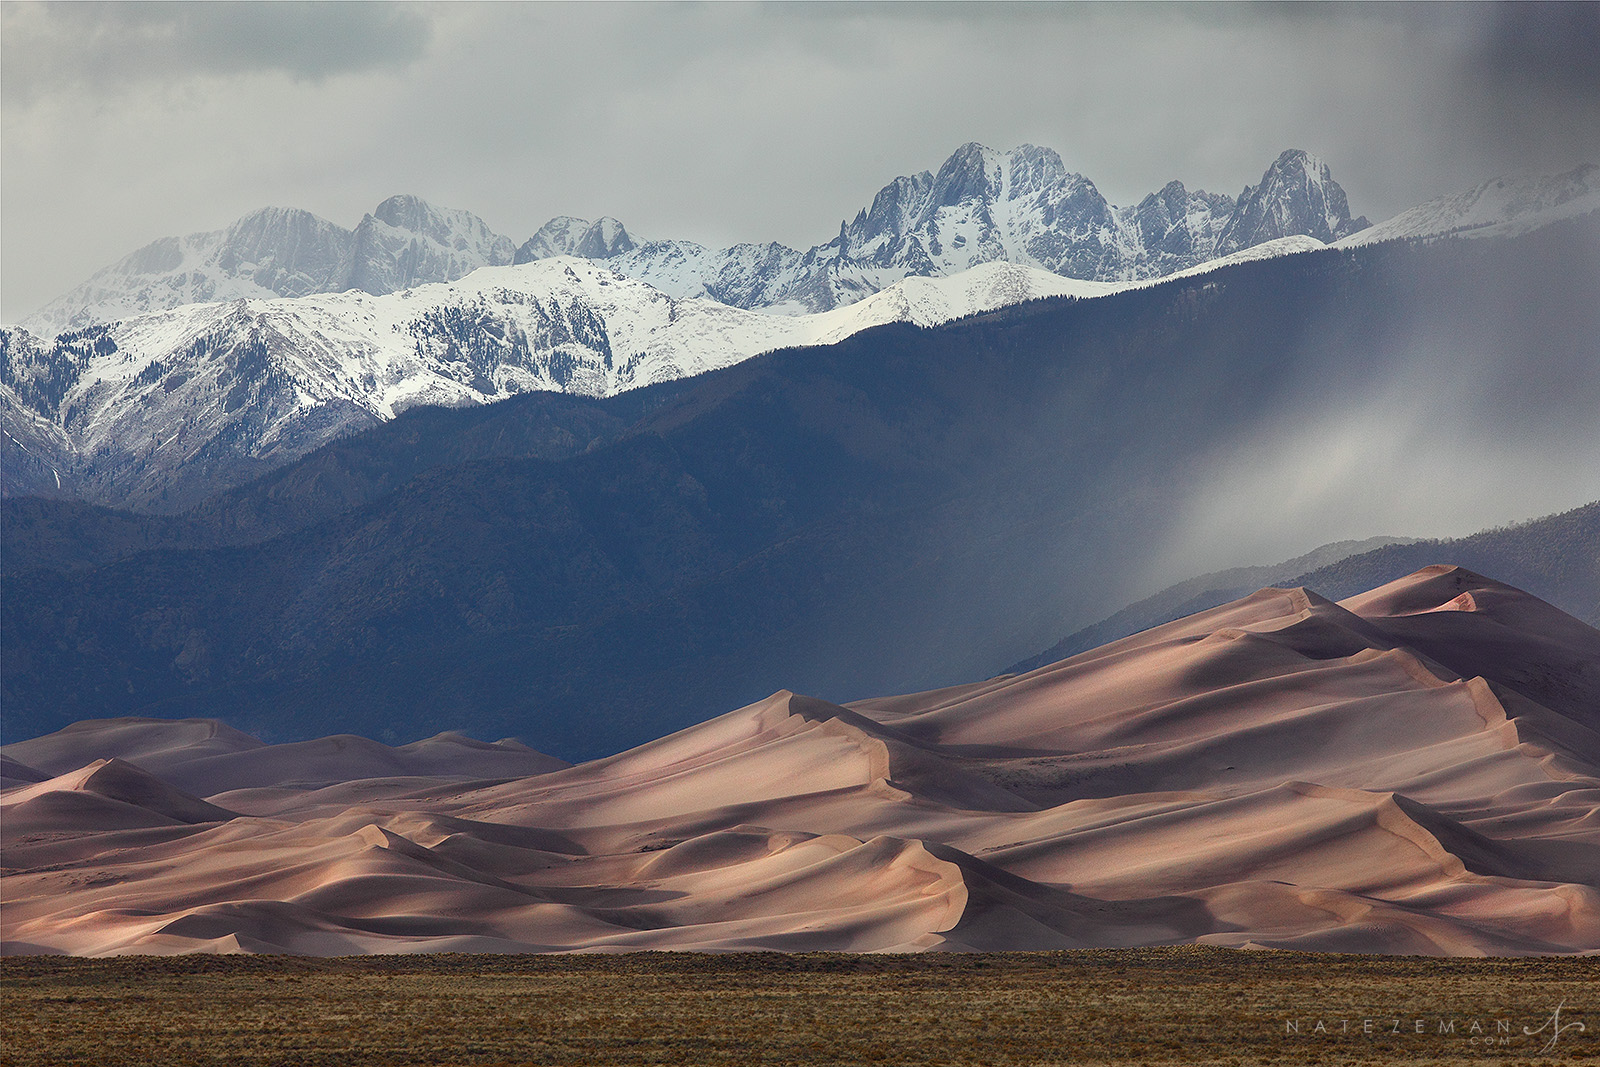 Great sand dunes, national park, dunes, sand, mountains, rain, snow, sangre de cristo, colorado, co, photo